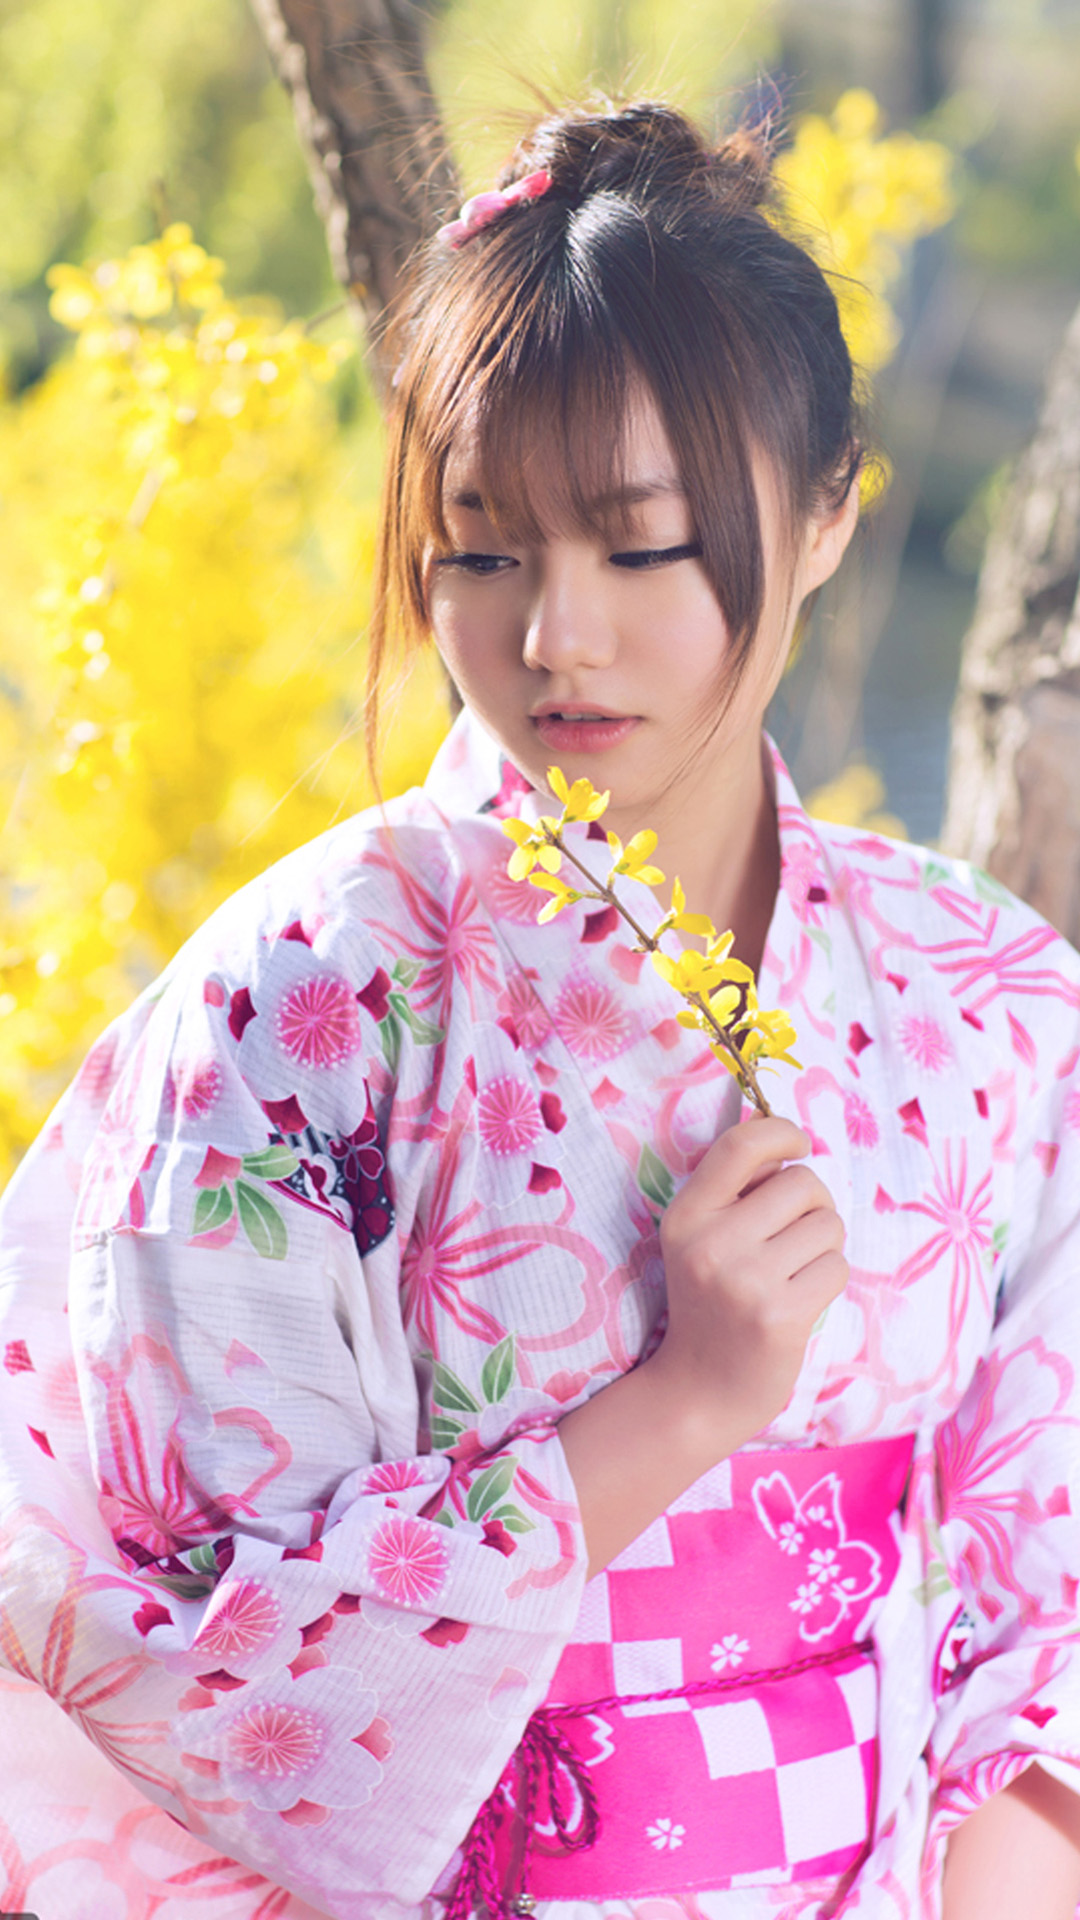 Cute Japanese Girl Android Wallpaper